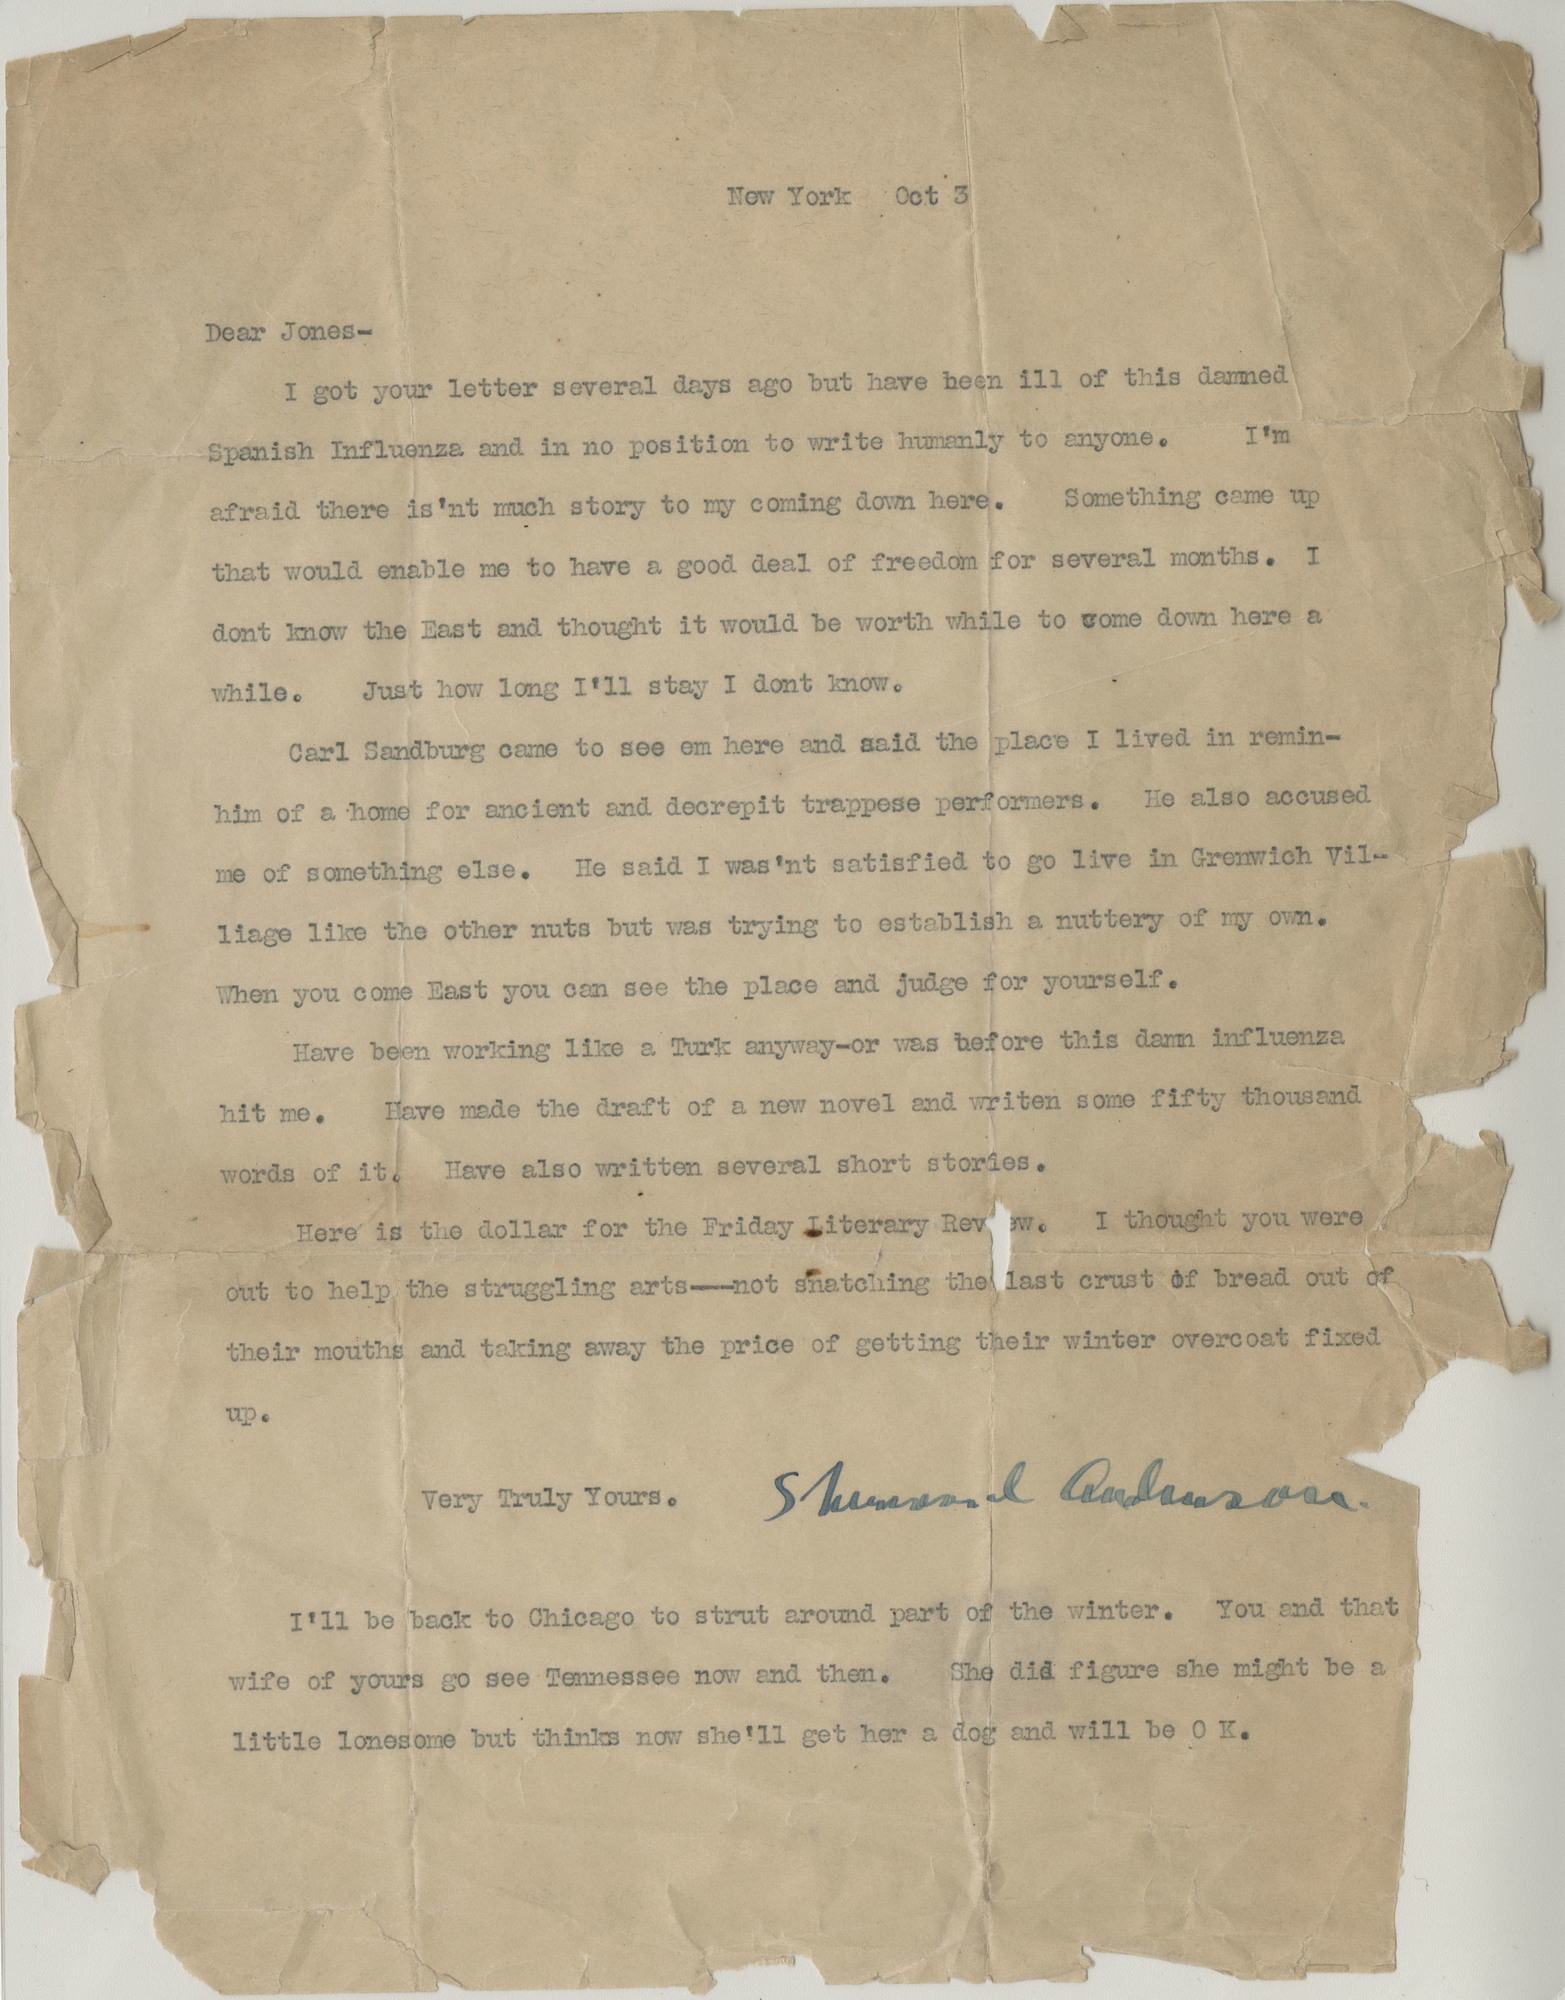 Ms2015-044_AndersonSherwood_Letter_1918_1003.jpg